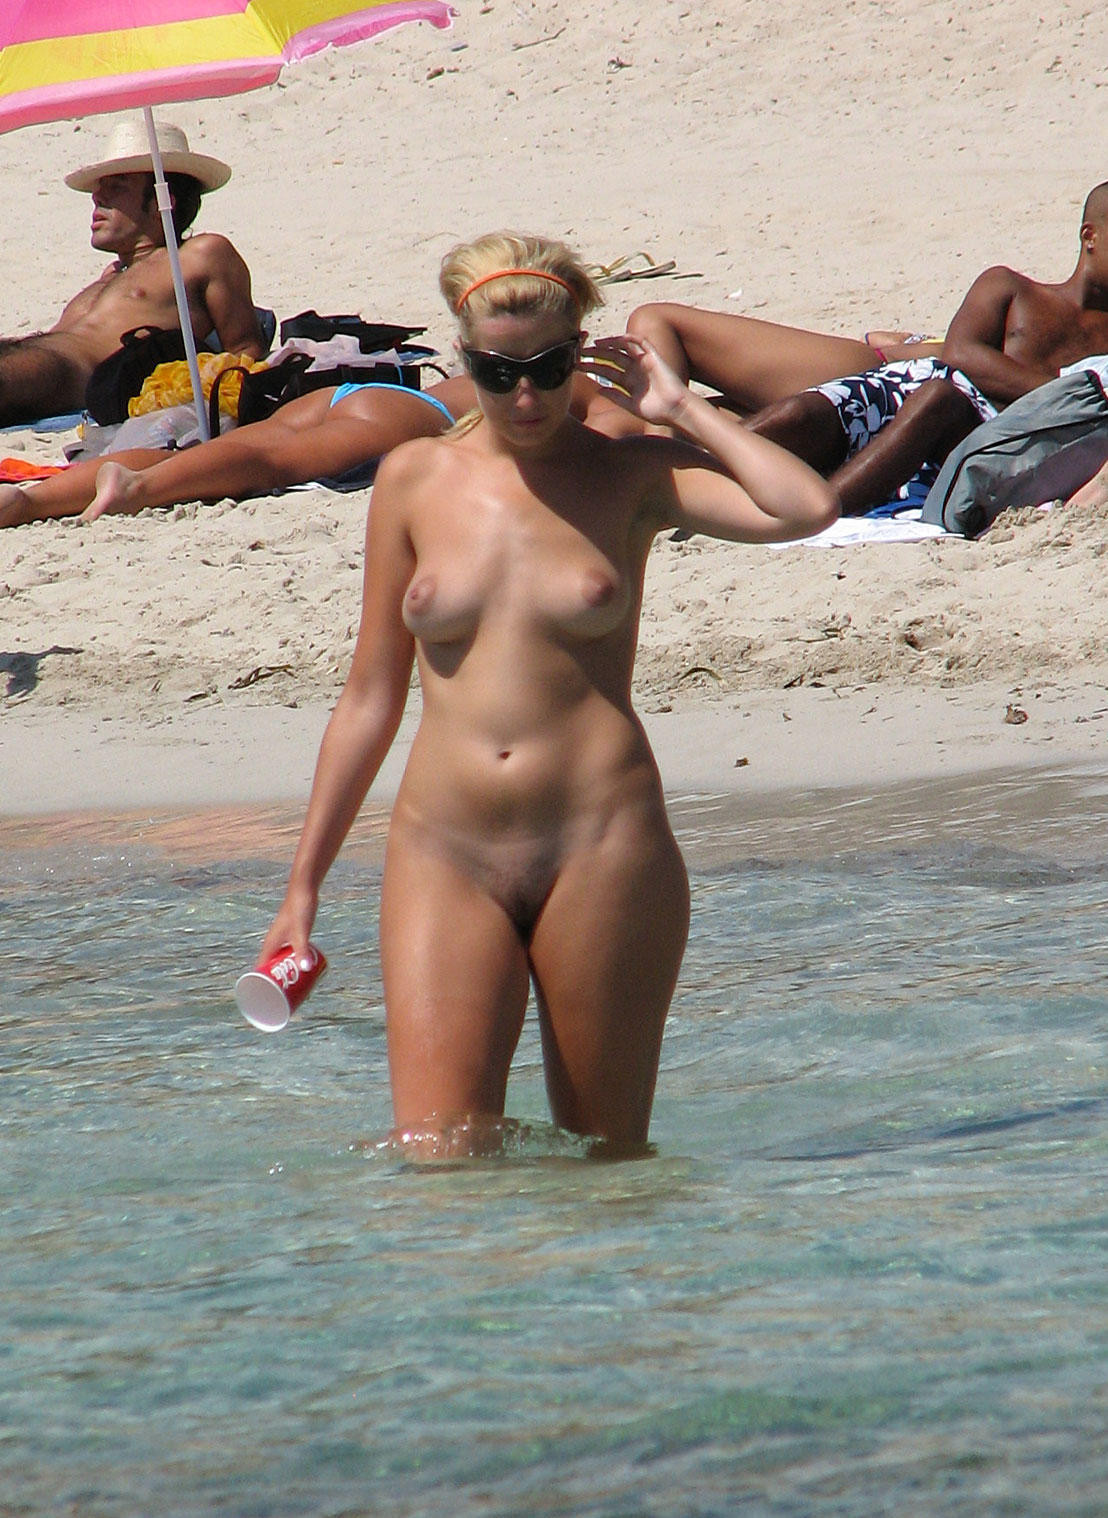 Stunning nude chick takes a quick dip before getting a tan